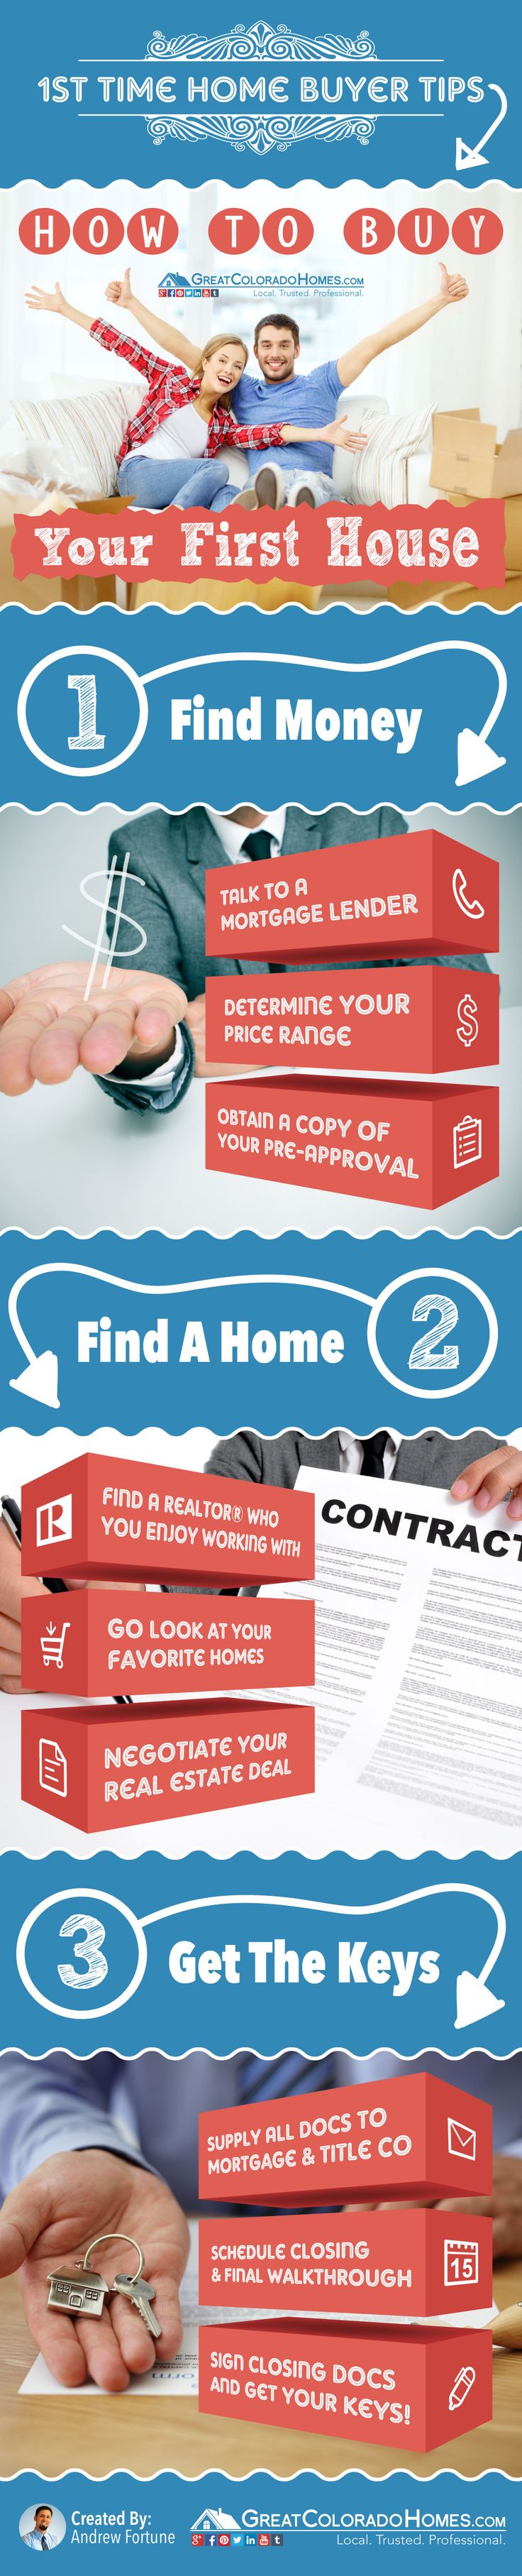 Interest for first time home buyers-5775